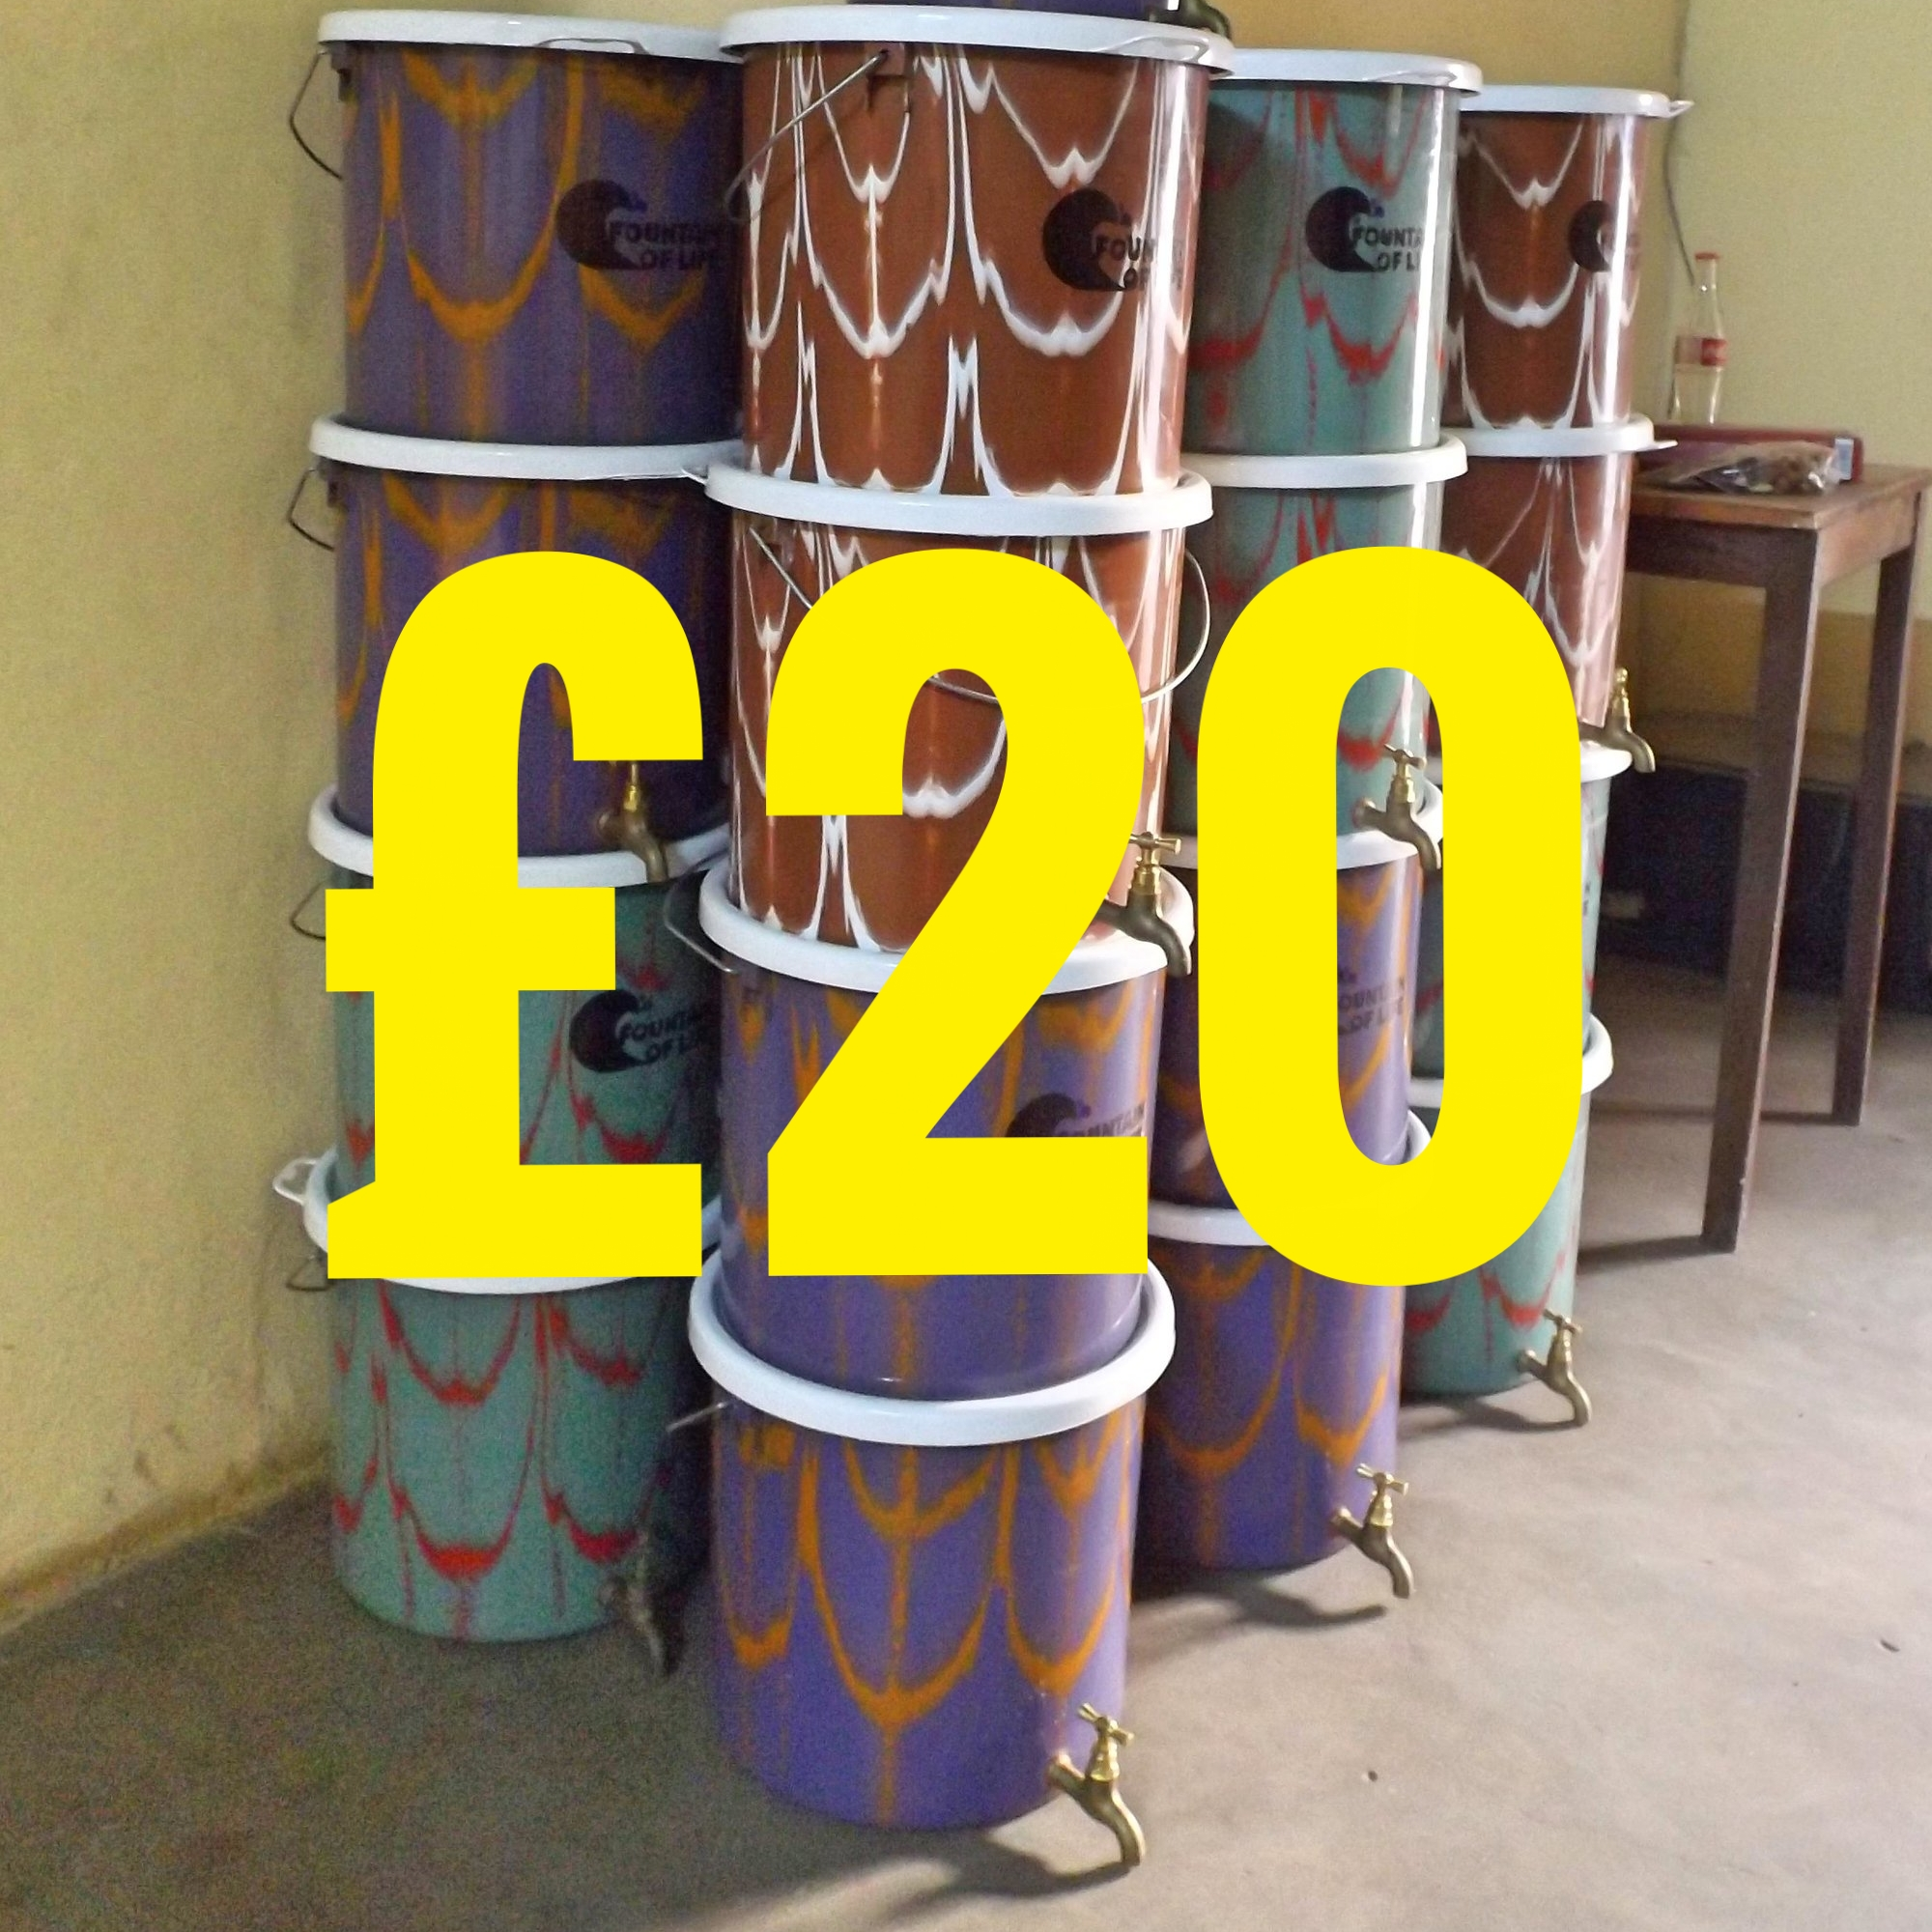 Contaminated drinking-water is estimated to cause 502,000 diarrheal deaths each year. A gift of £20 will provide a household with a ceramic candle filter. Not only will this provide the users with safe water, it also acts as storage and prevents further contamination after filtration.